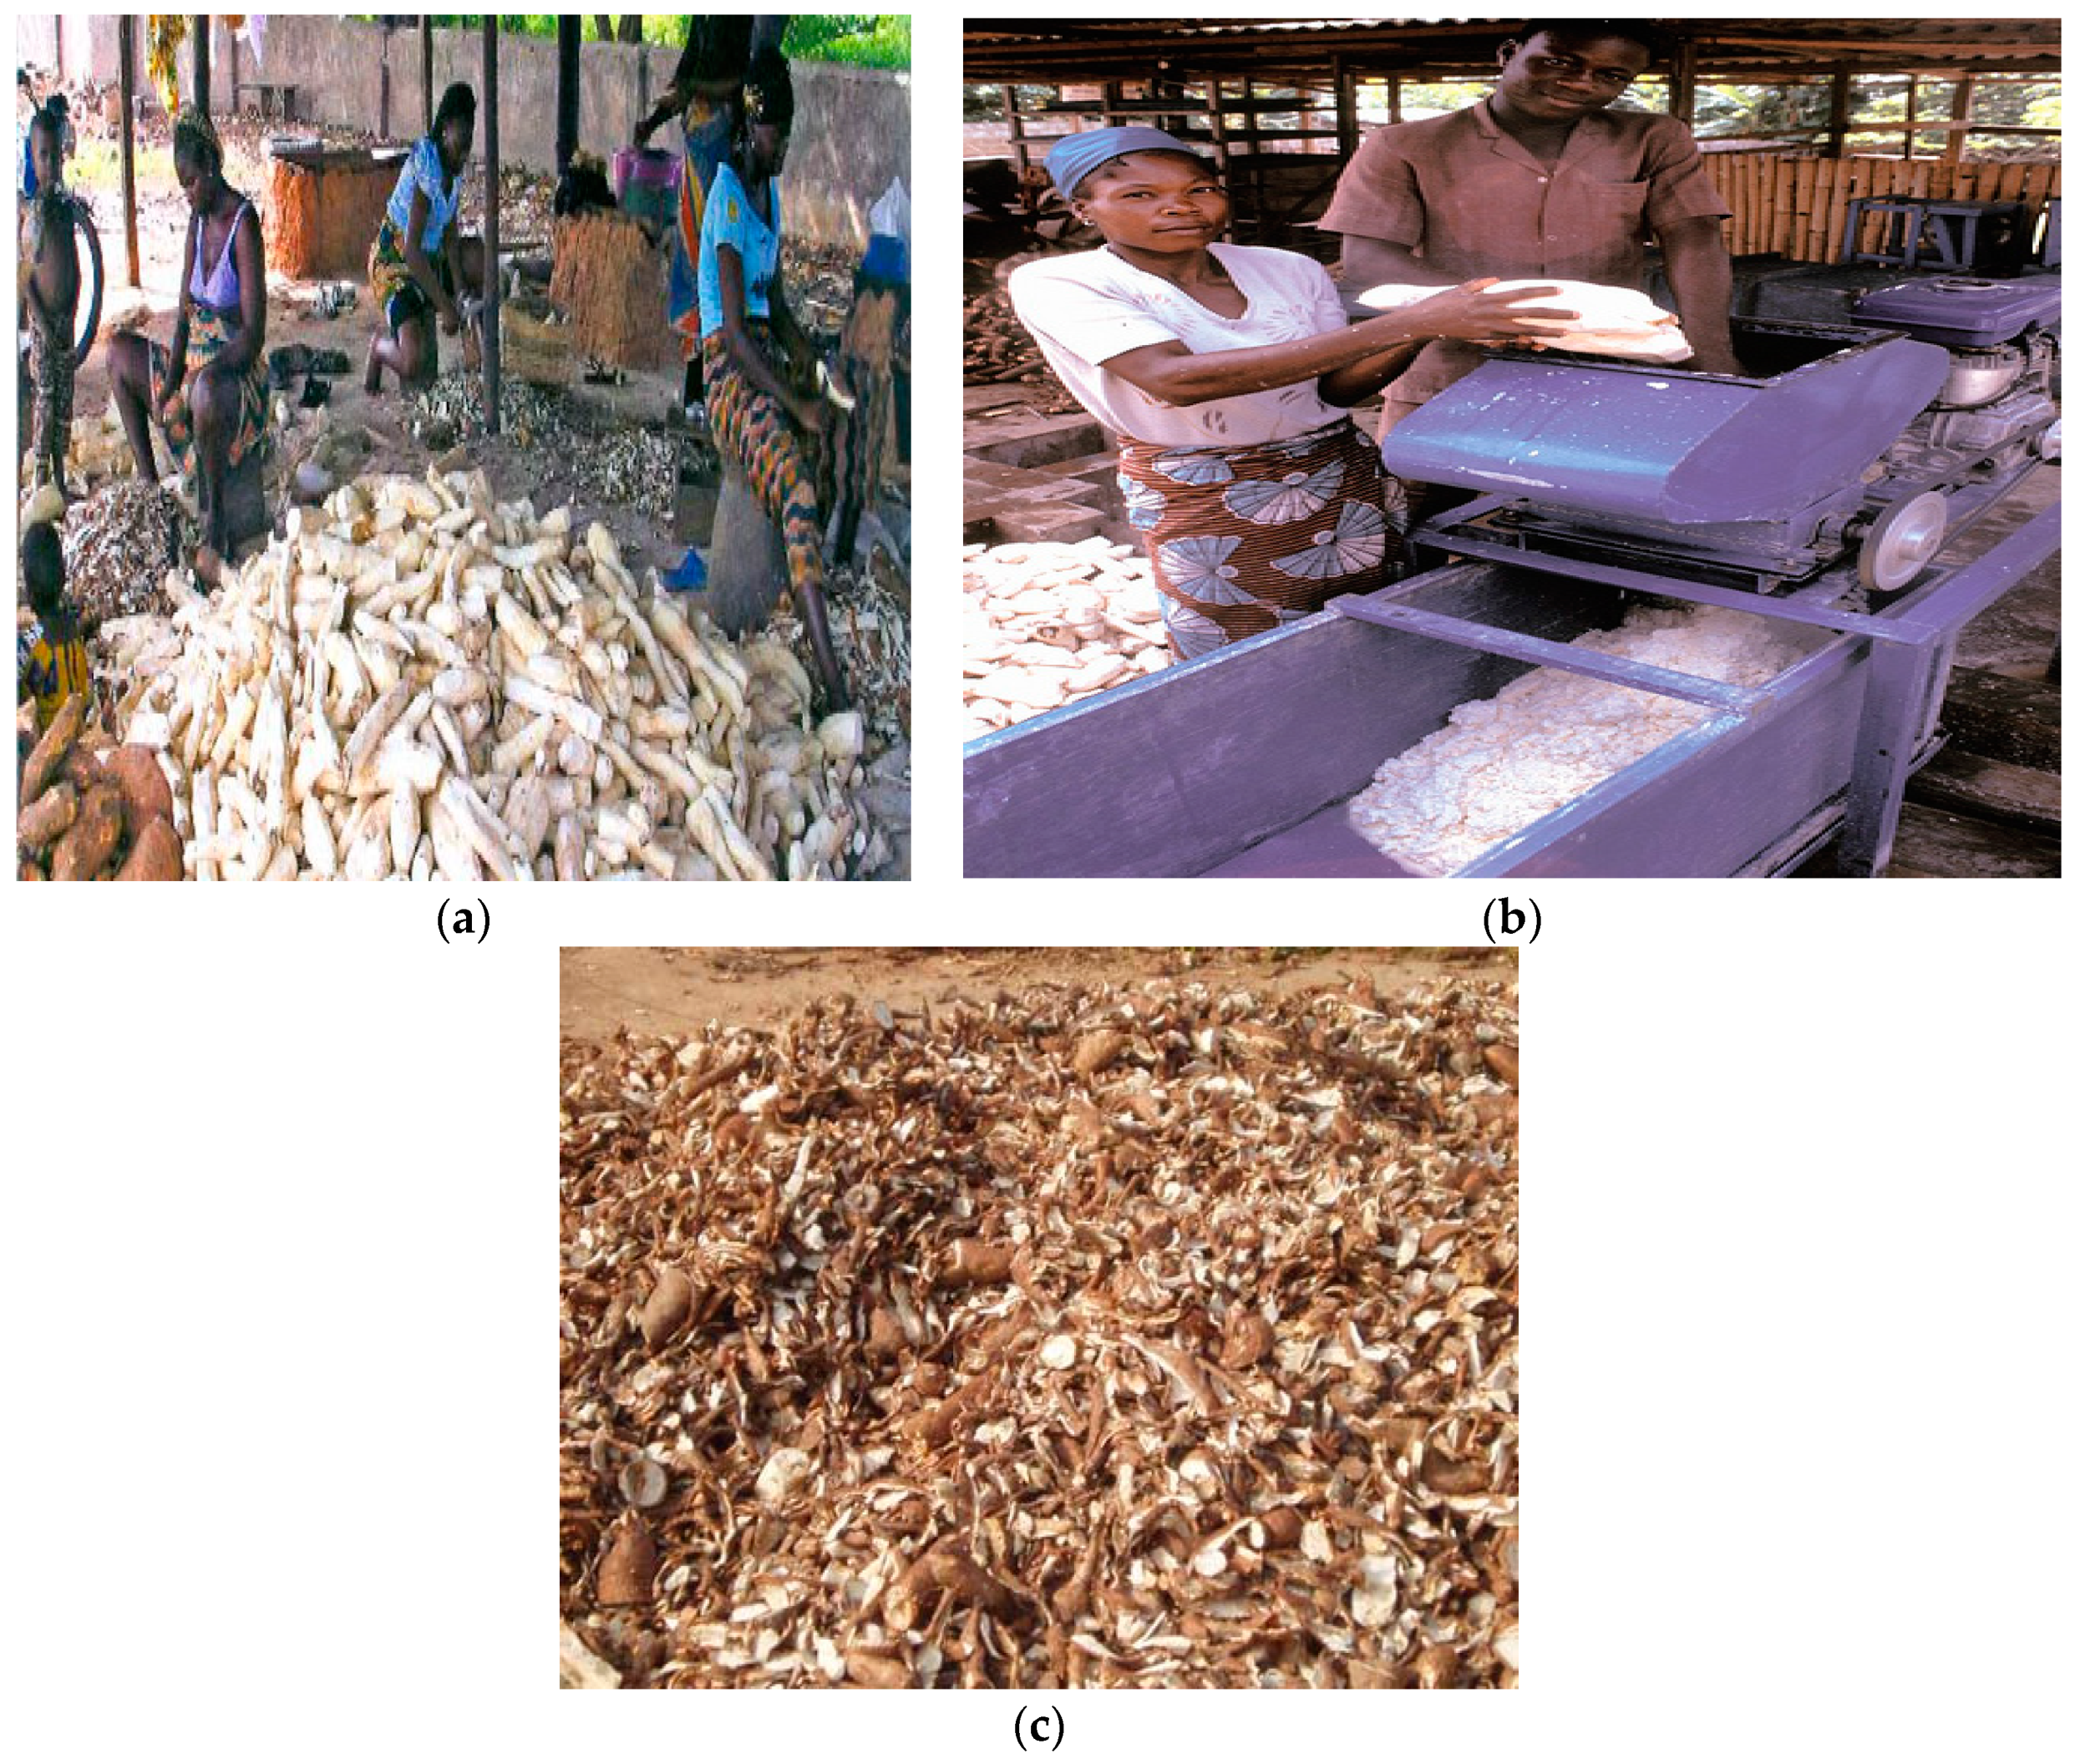 Recycling | Free Full-Text | Cassava Waste Management and